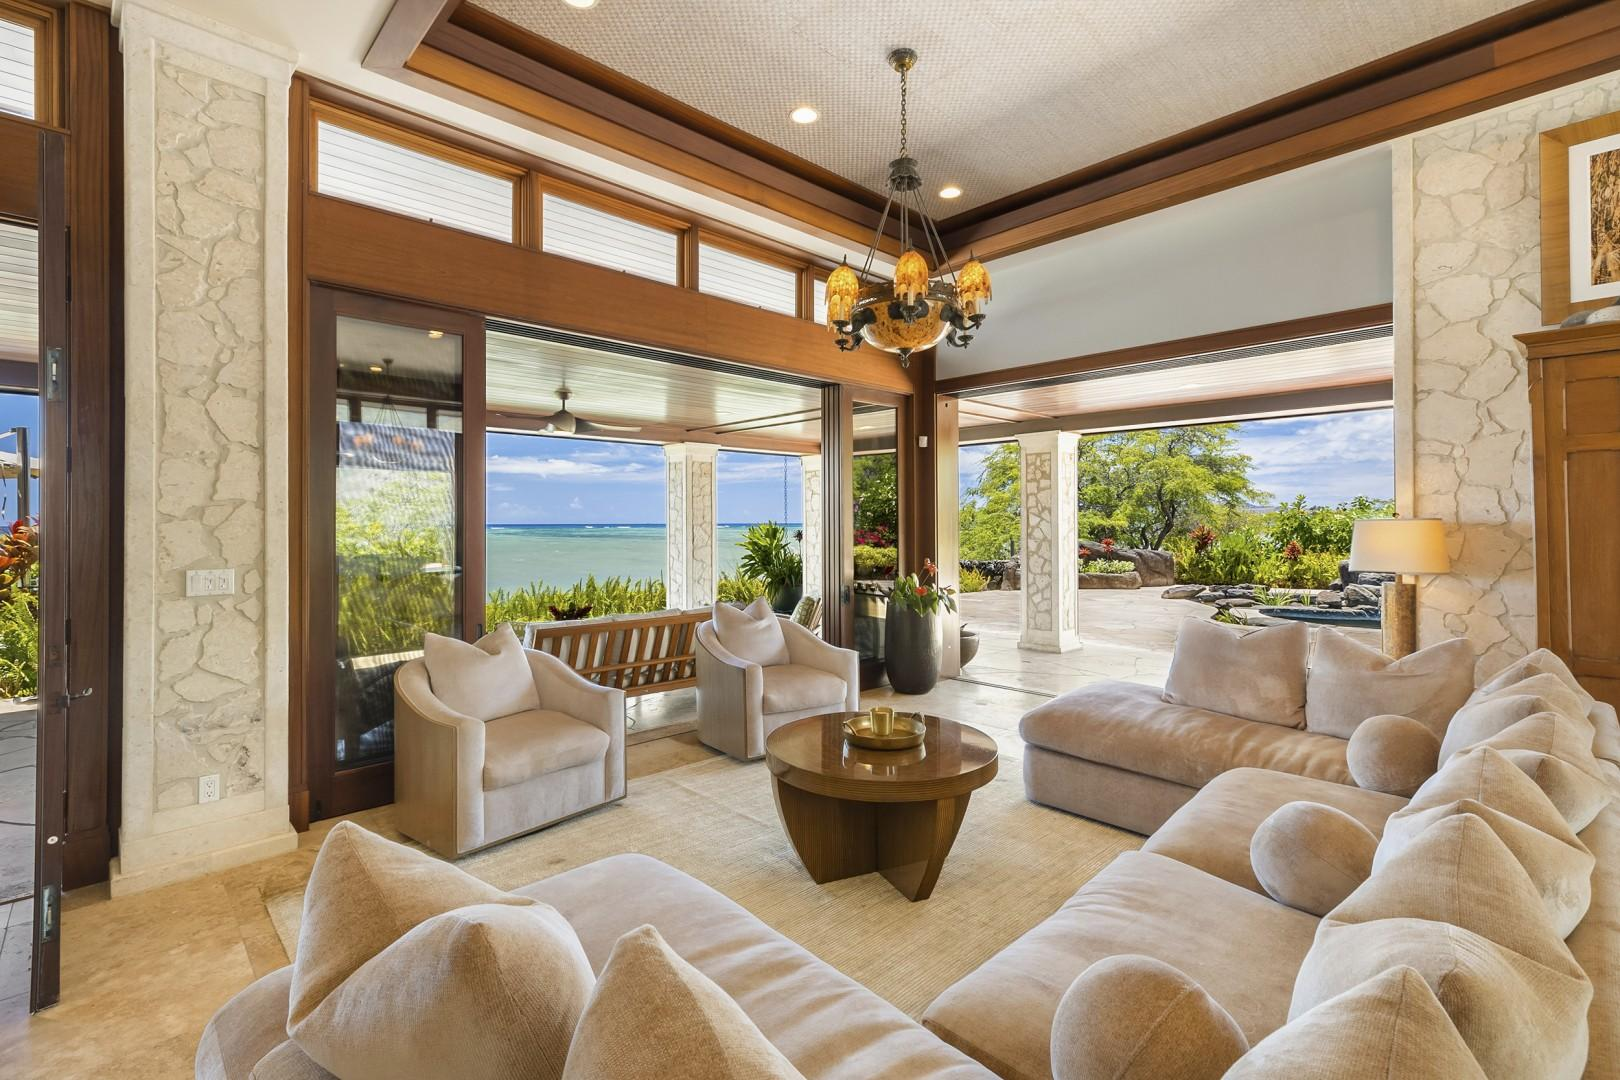 Living Room has sliding doors that pocket back and open up to the Poolside and Oceanside Lanais